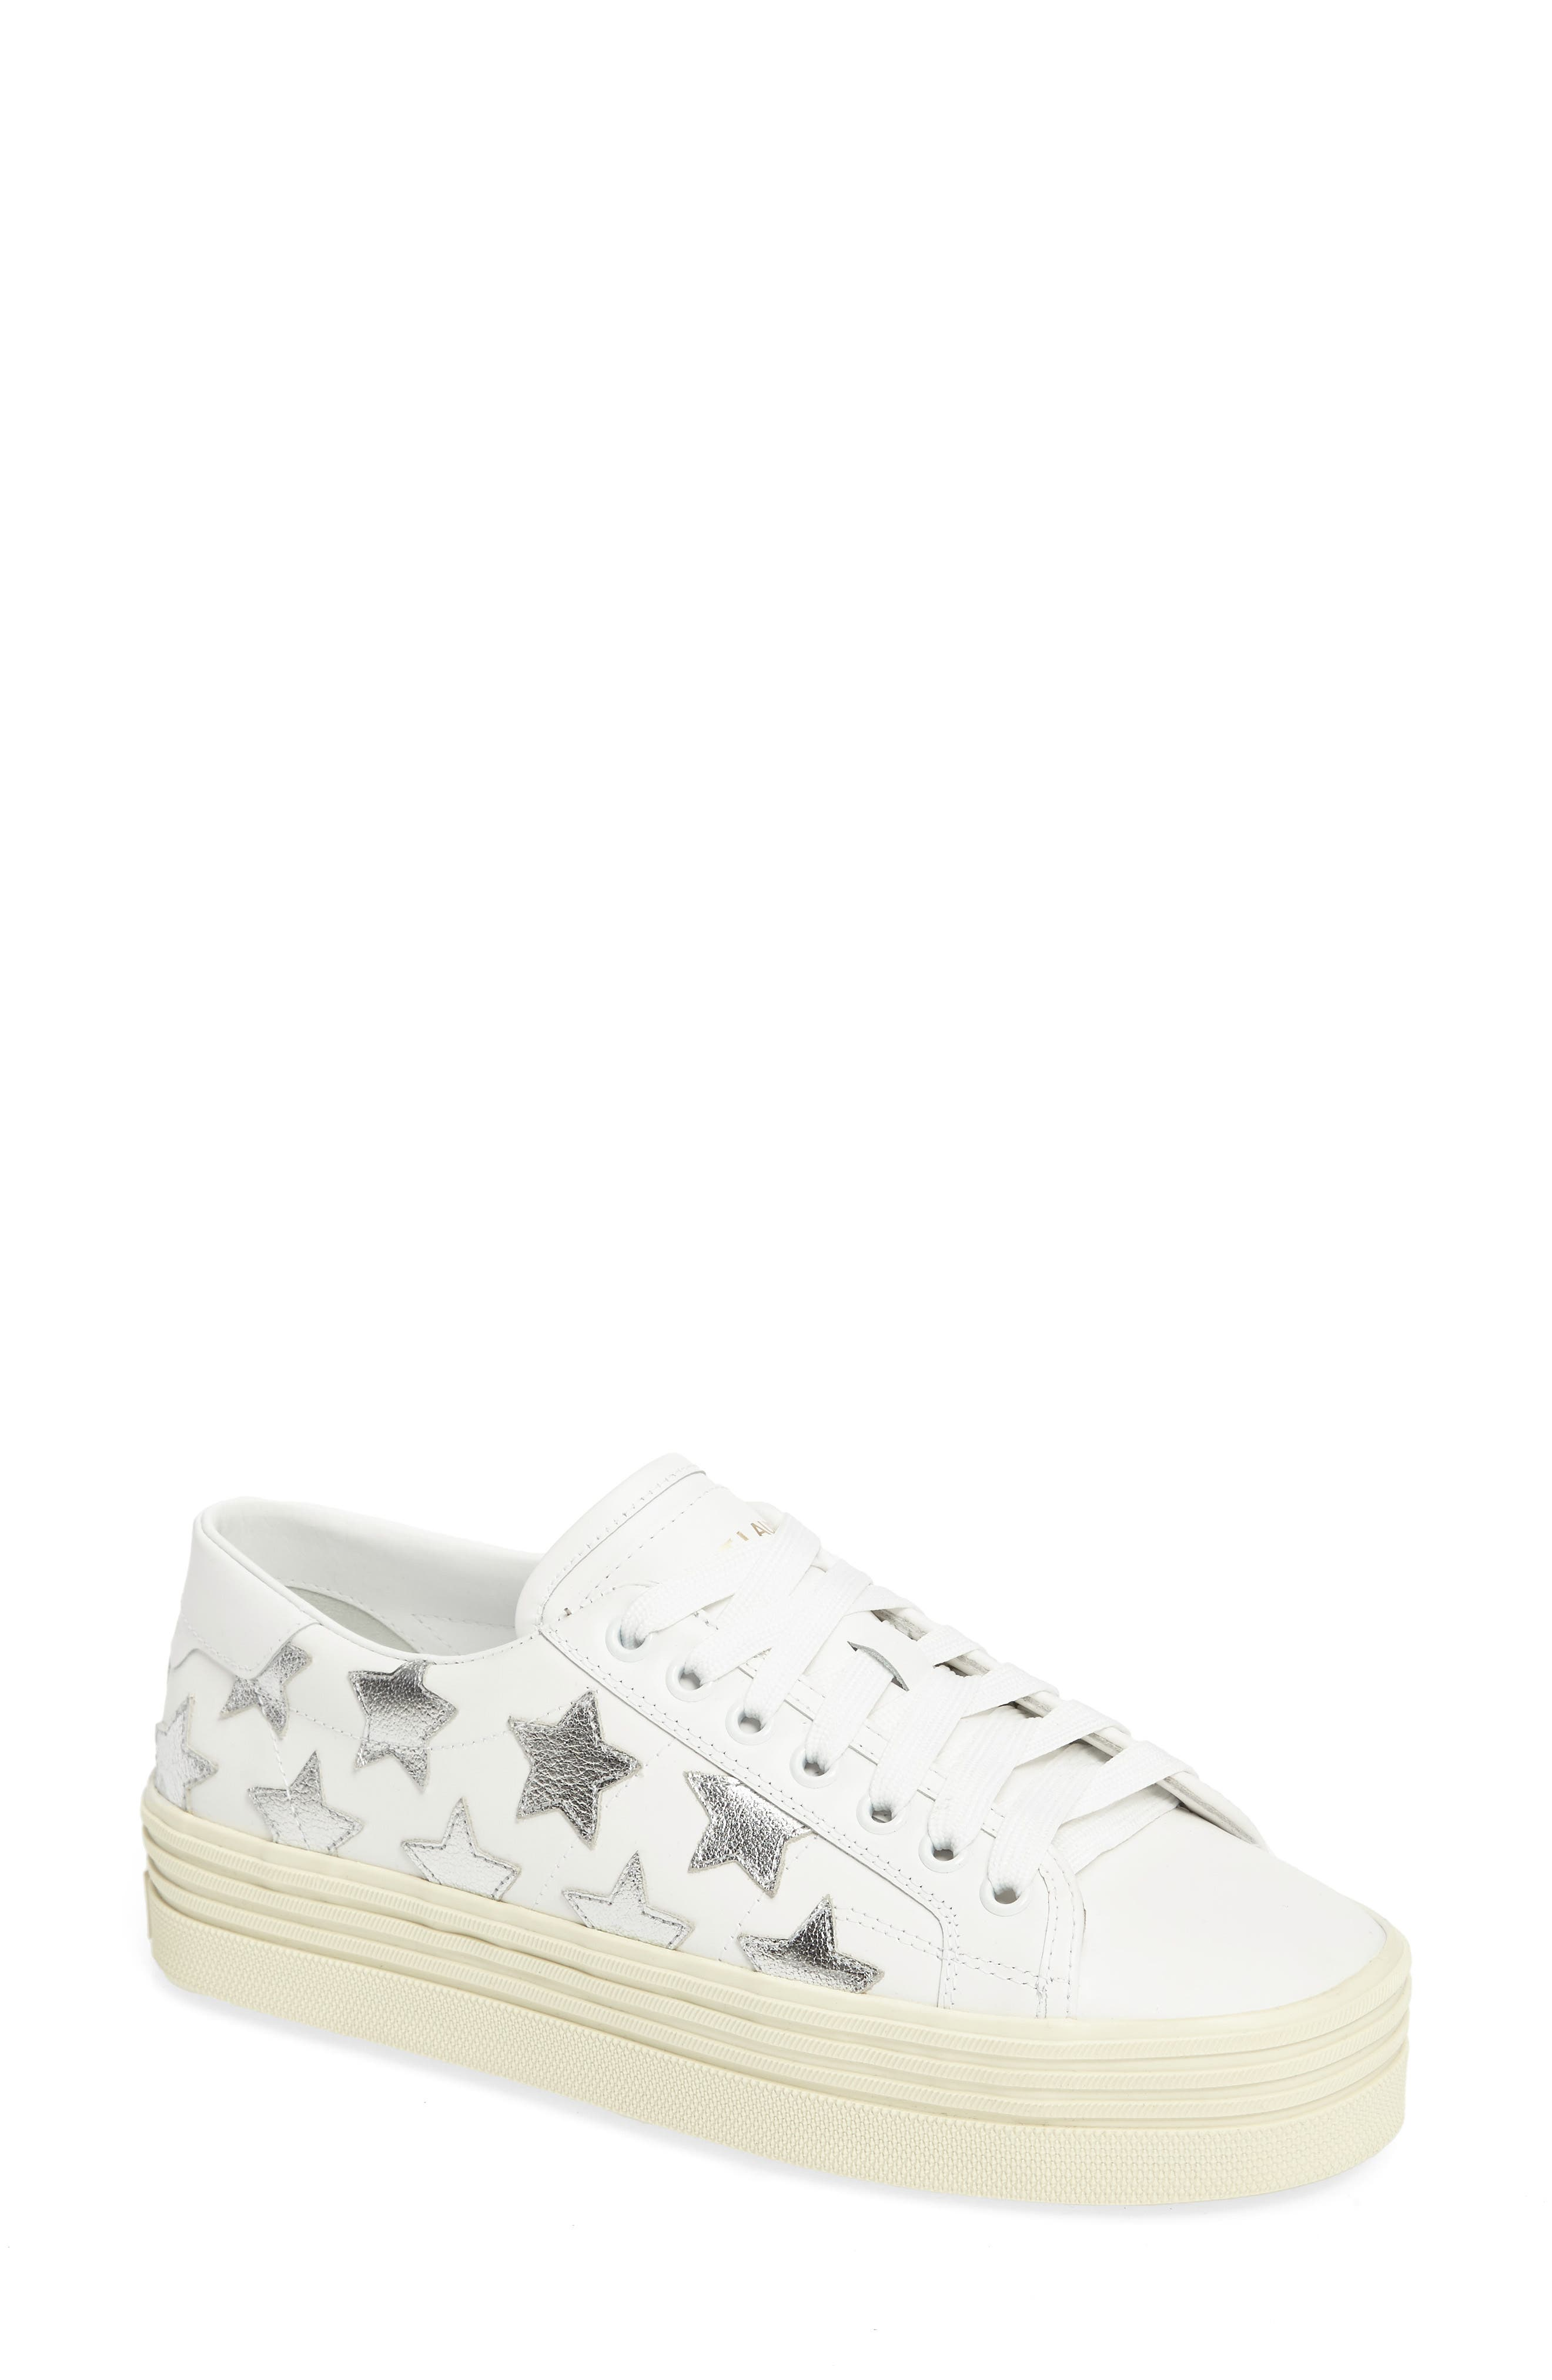 Double Court Classic Sneaker,                         Main,                         color, Ivory